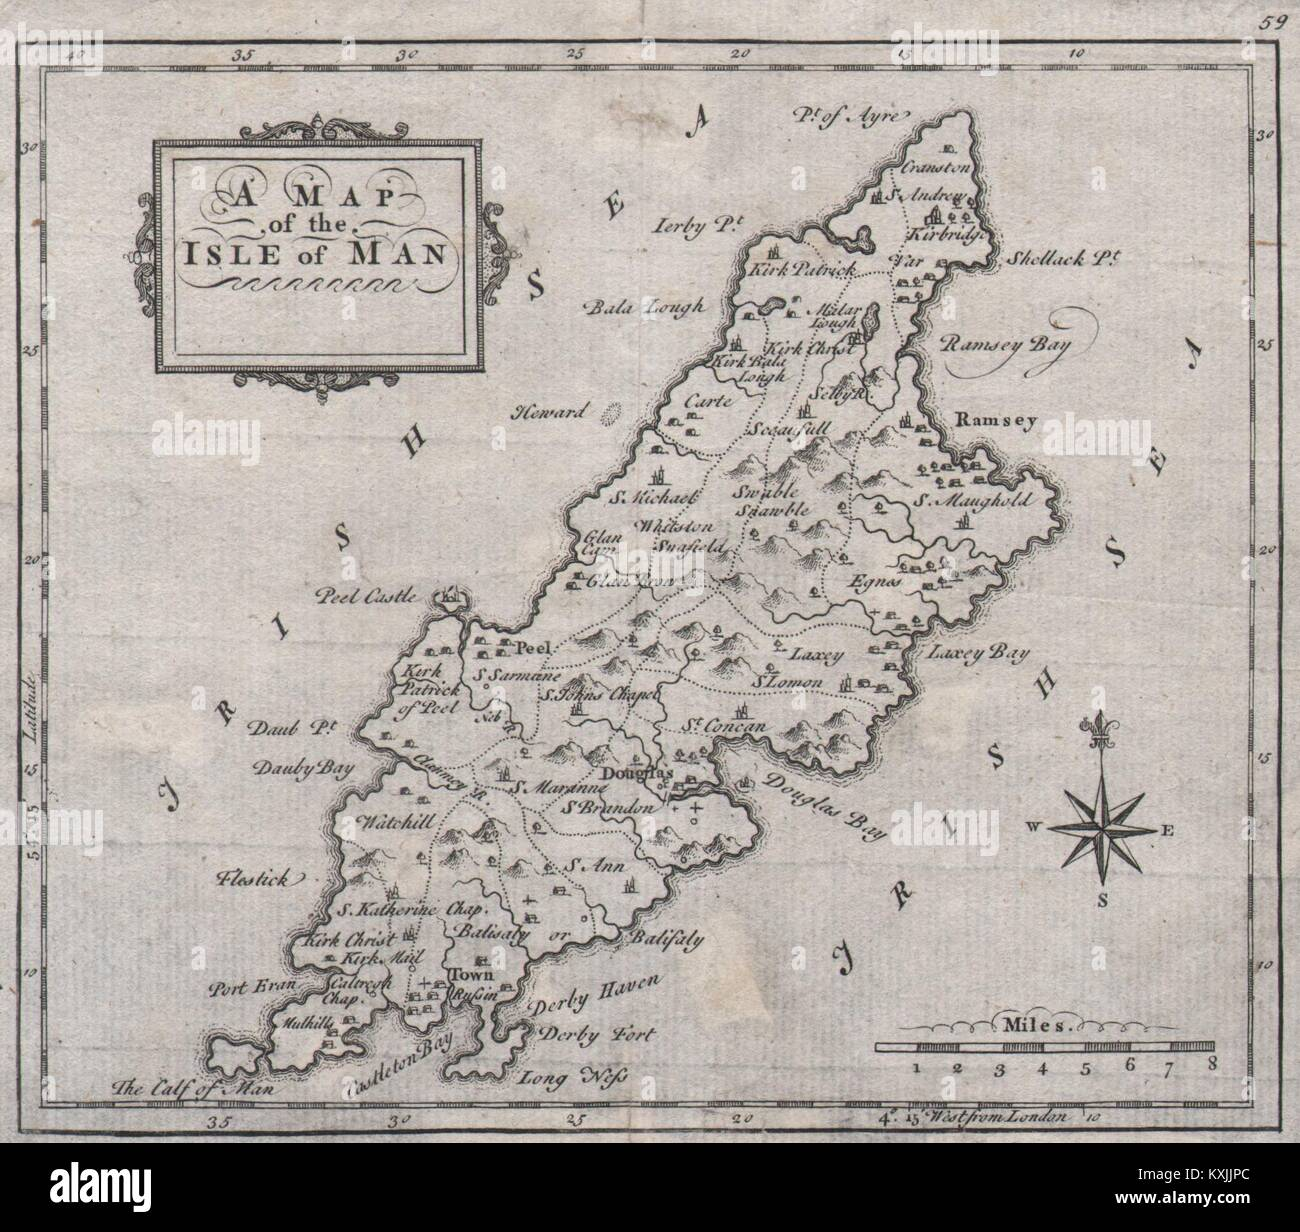 A map of the Isle of Man Antique map by Thomas HUTCHINSON 1748 old